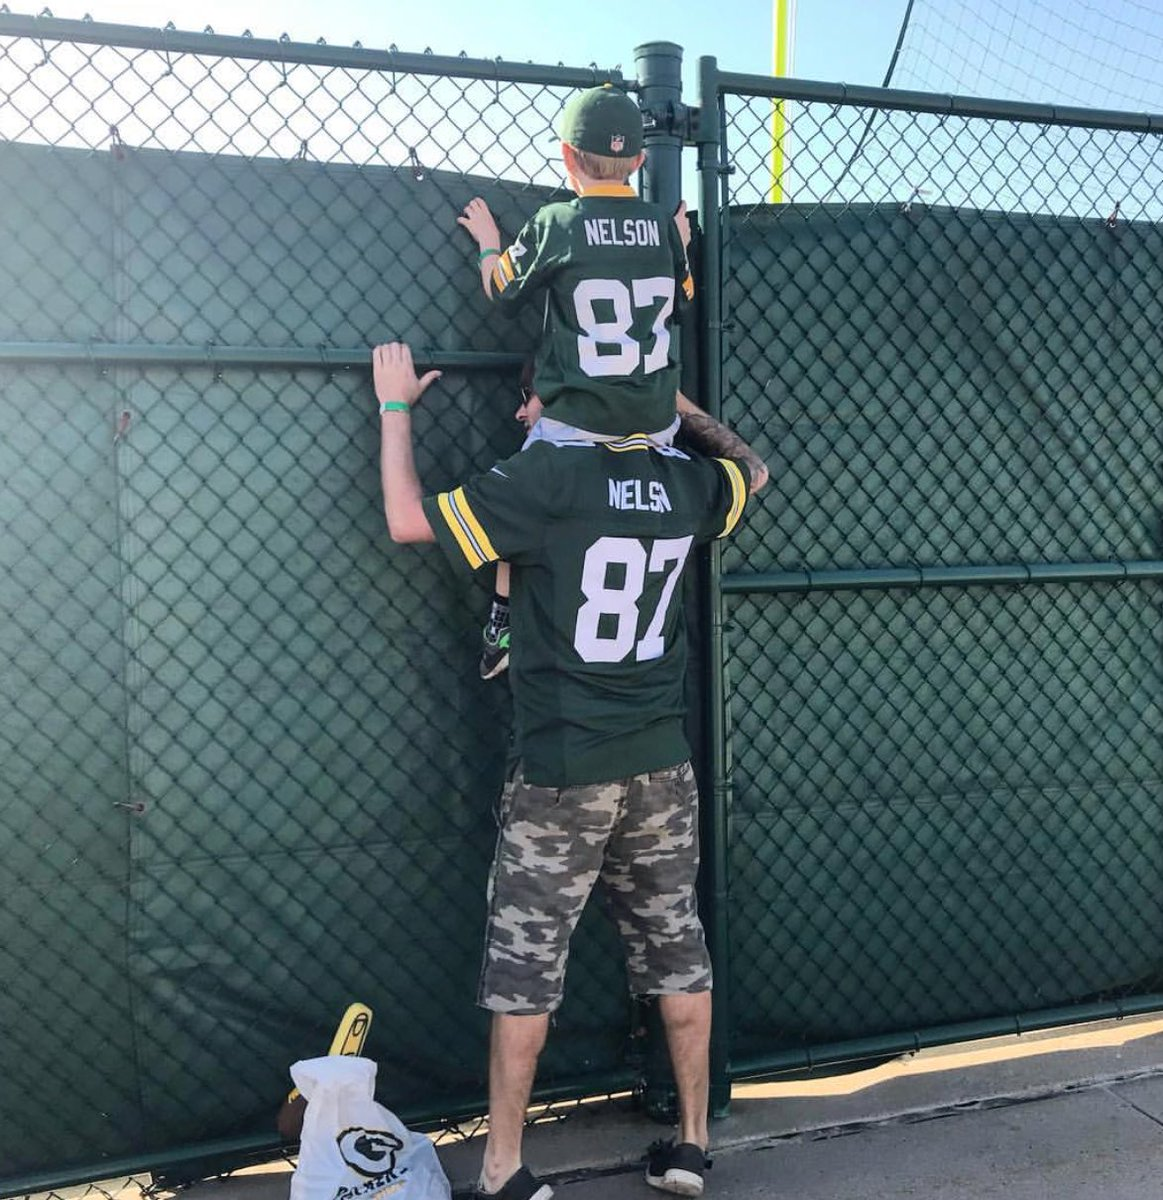 Son wants to see Packers practice, Dad improvises (📷 by @mattlebard)